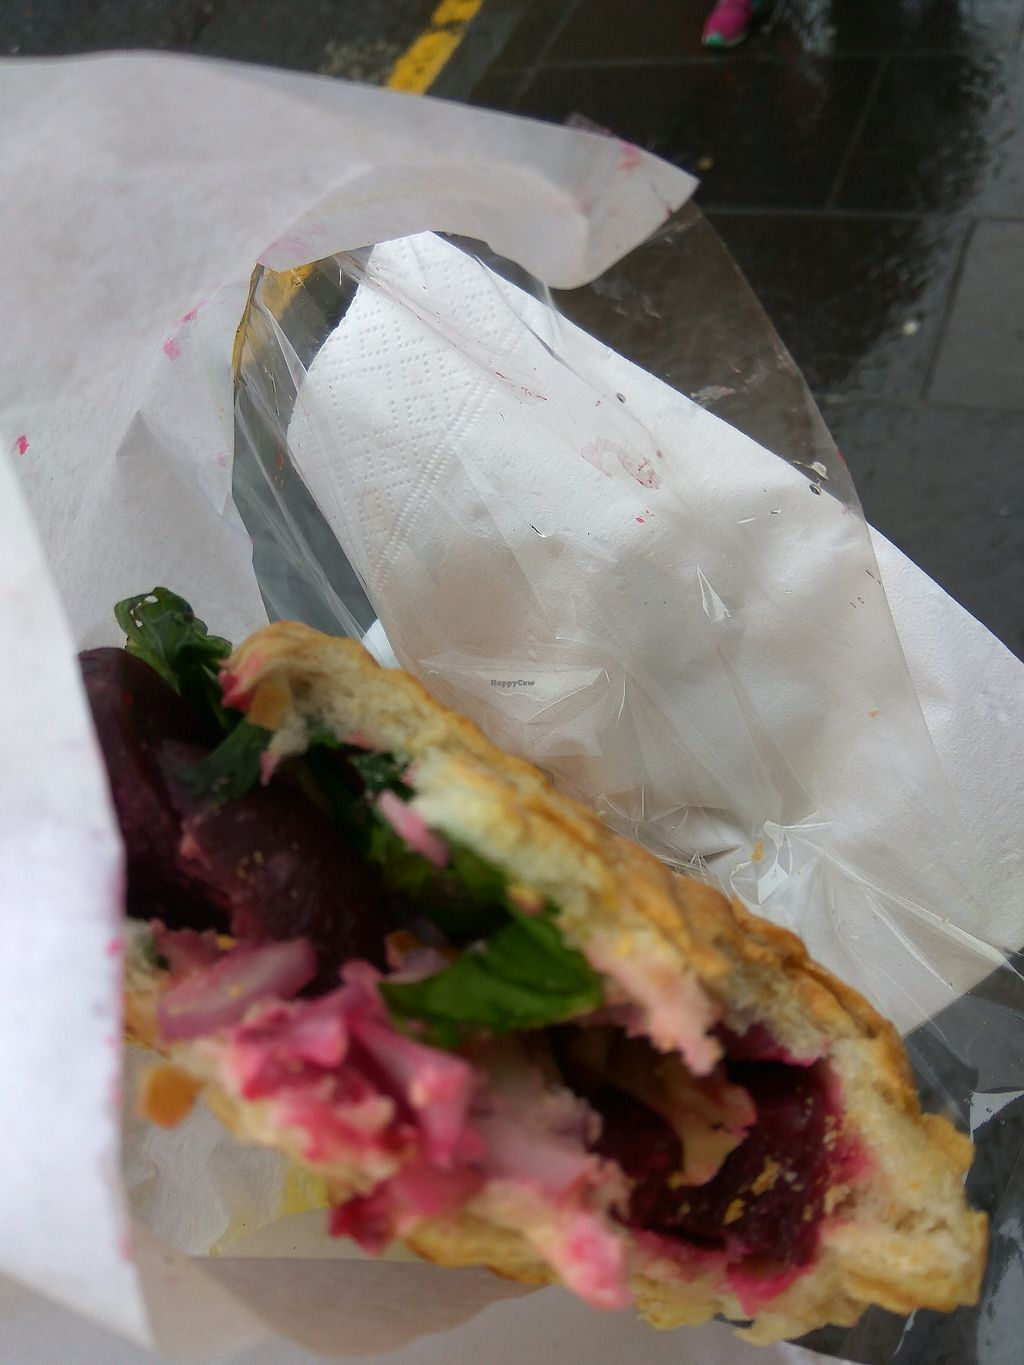 "Photo of Let Me Eat Too  by <a href=""/members/profile/TrixieFirecracker"">TrixieFirecracker</a> <br/>Beetroot AND hummus sandwich <br/> August 25, 2017  - <a href='/contact/abuse/image/87482/297245'>Report</a>"